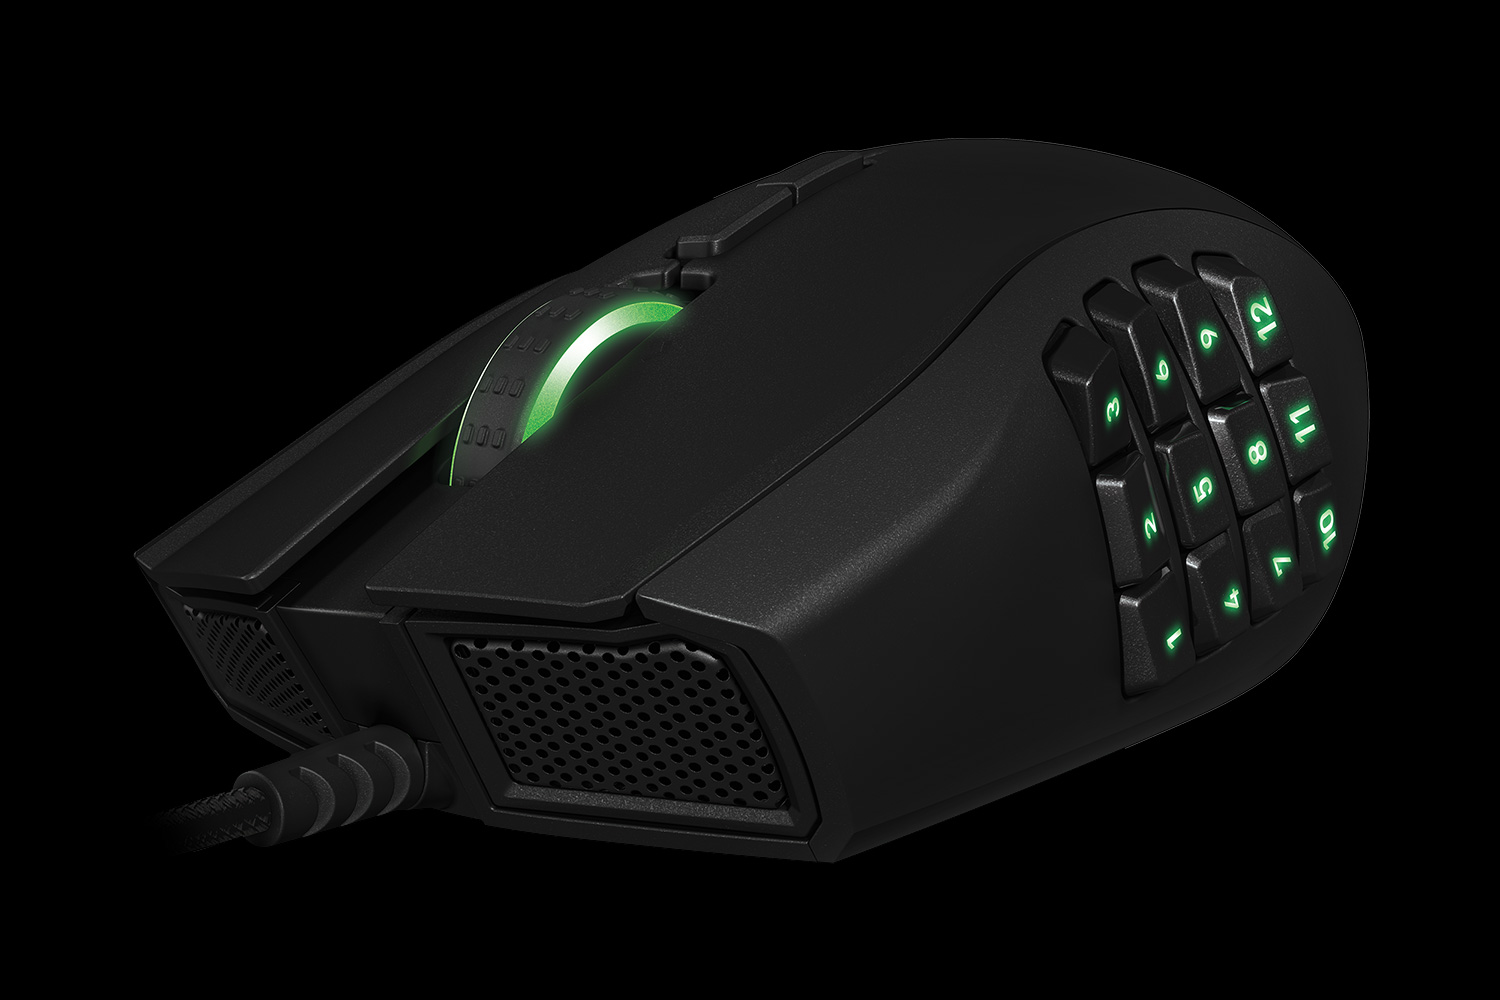 Razer Naga Gaming Mouse Ergonomic Mmo Usb Wiring Diagram For Wires Free Download Prevnext